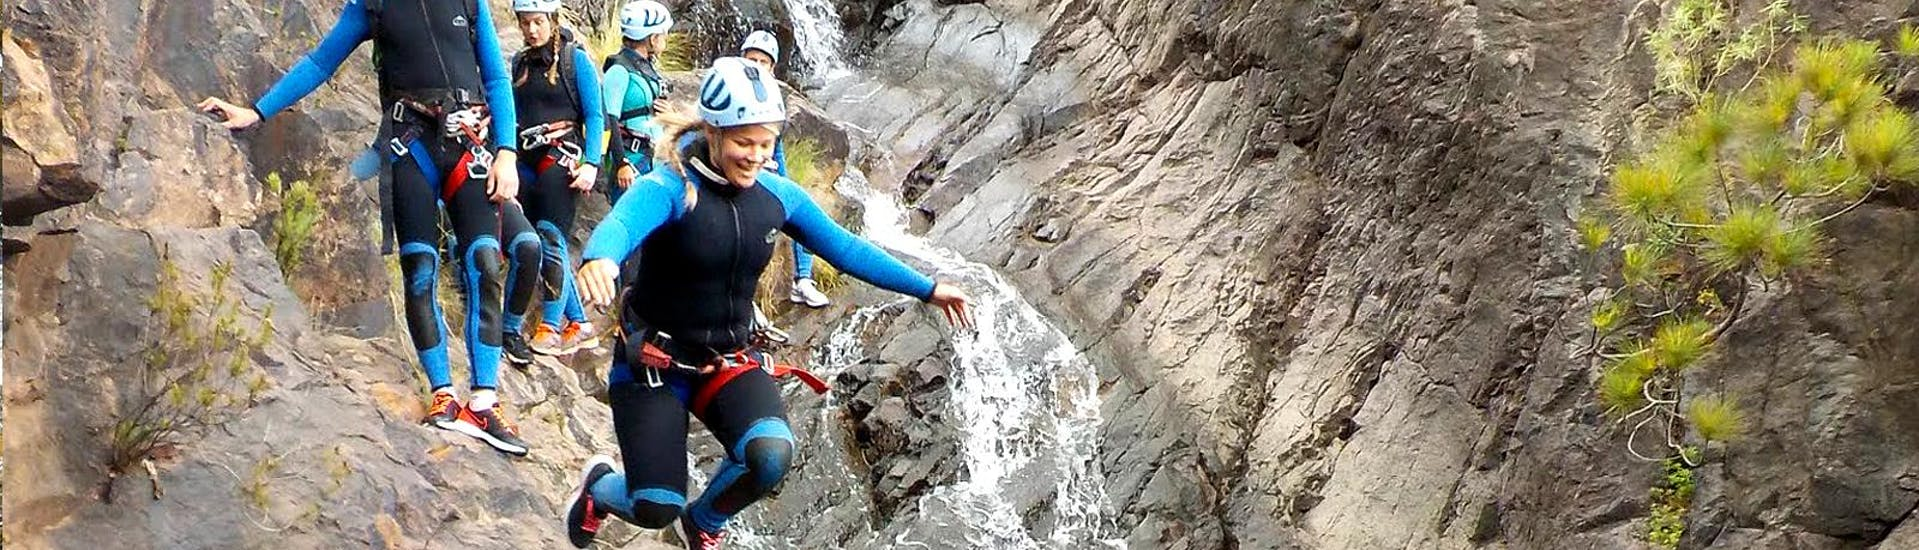 During the Canyoning at Barranco de la Manta in Gran Canaria a woman jumps from the cliff into the water under the supervision of the guide from Mojo Picón Aventura.